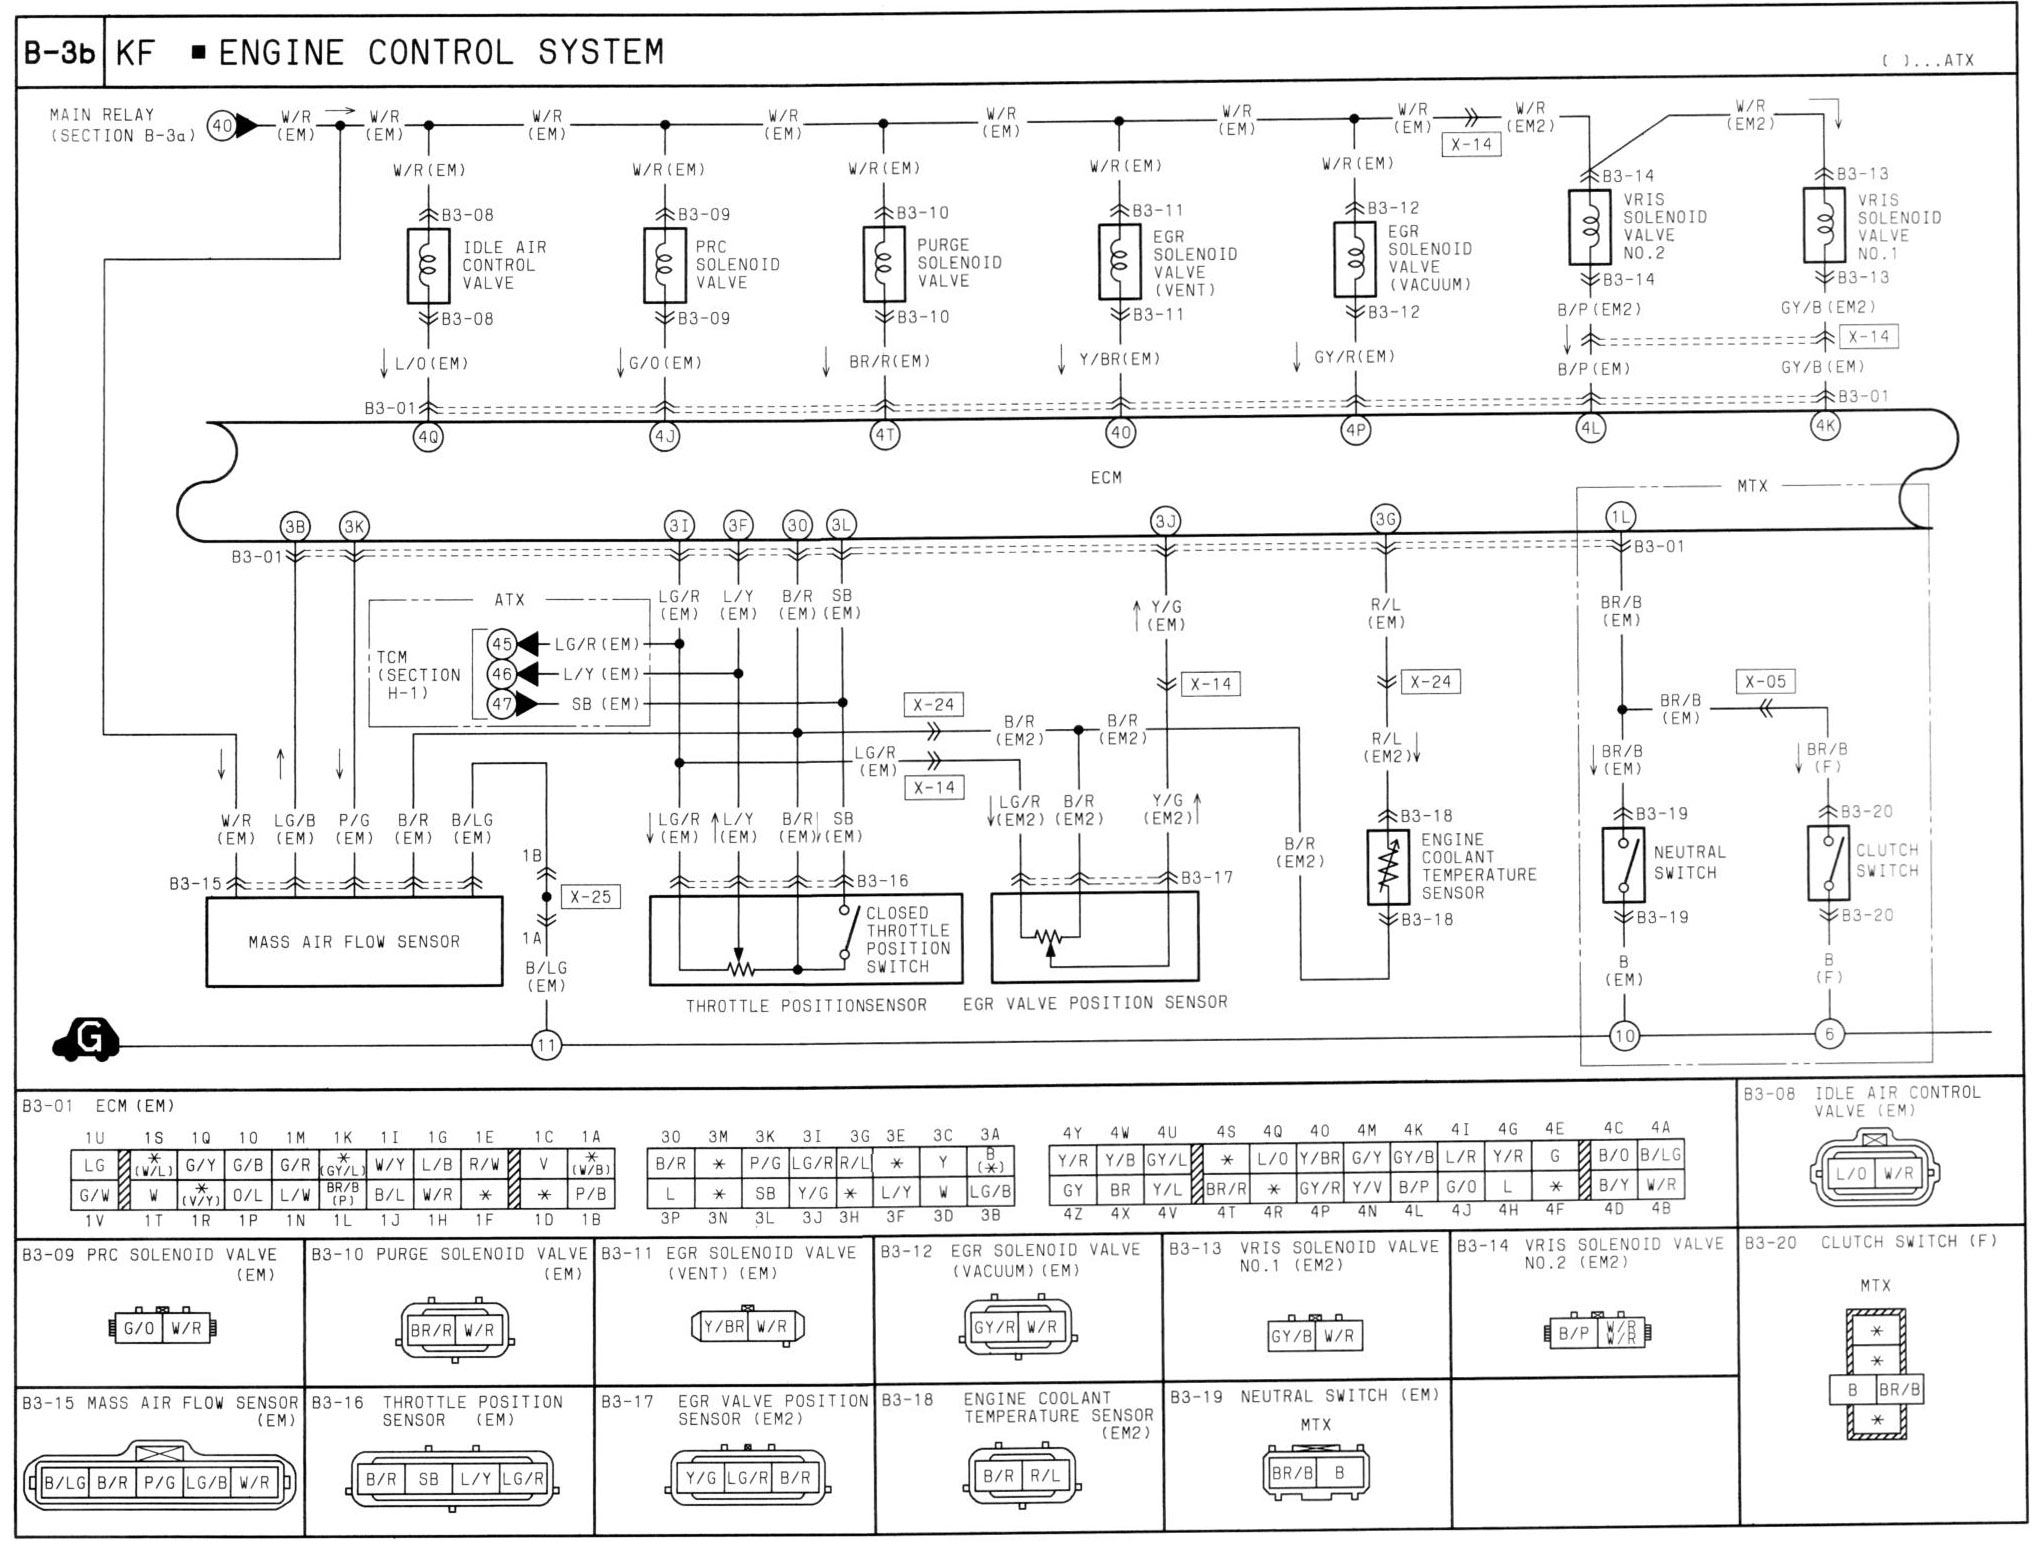 mazda 3 horn wiring diagram Collection-engine control system with ecm and mass air flow sensor wiring diagram rh videojourneysrentals Mazda 3 Radio Wiring Diagram 2003 Mazda 6 Wiring Diagram 18-t